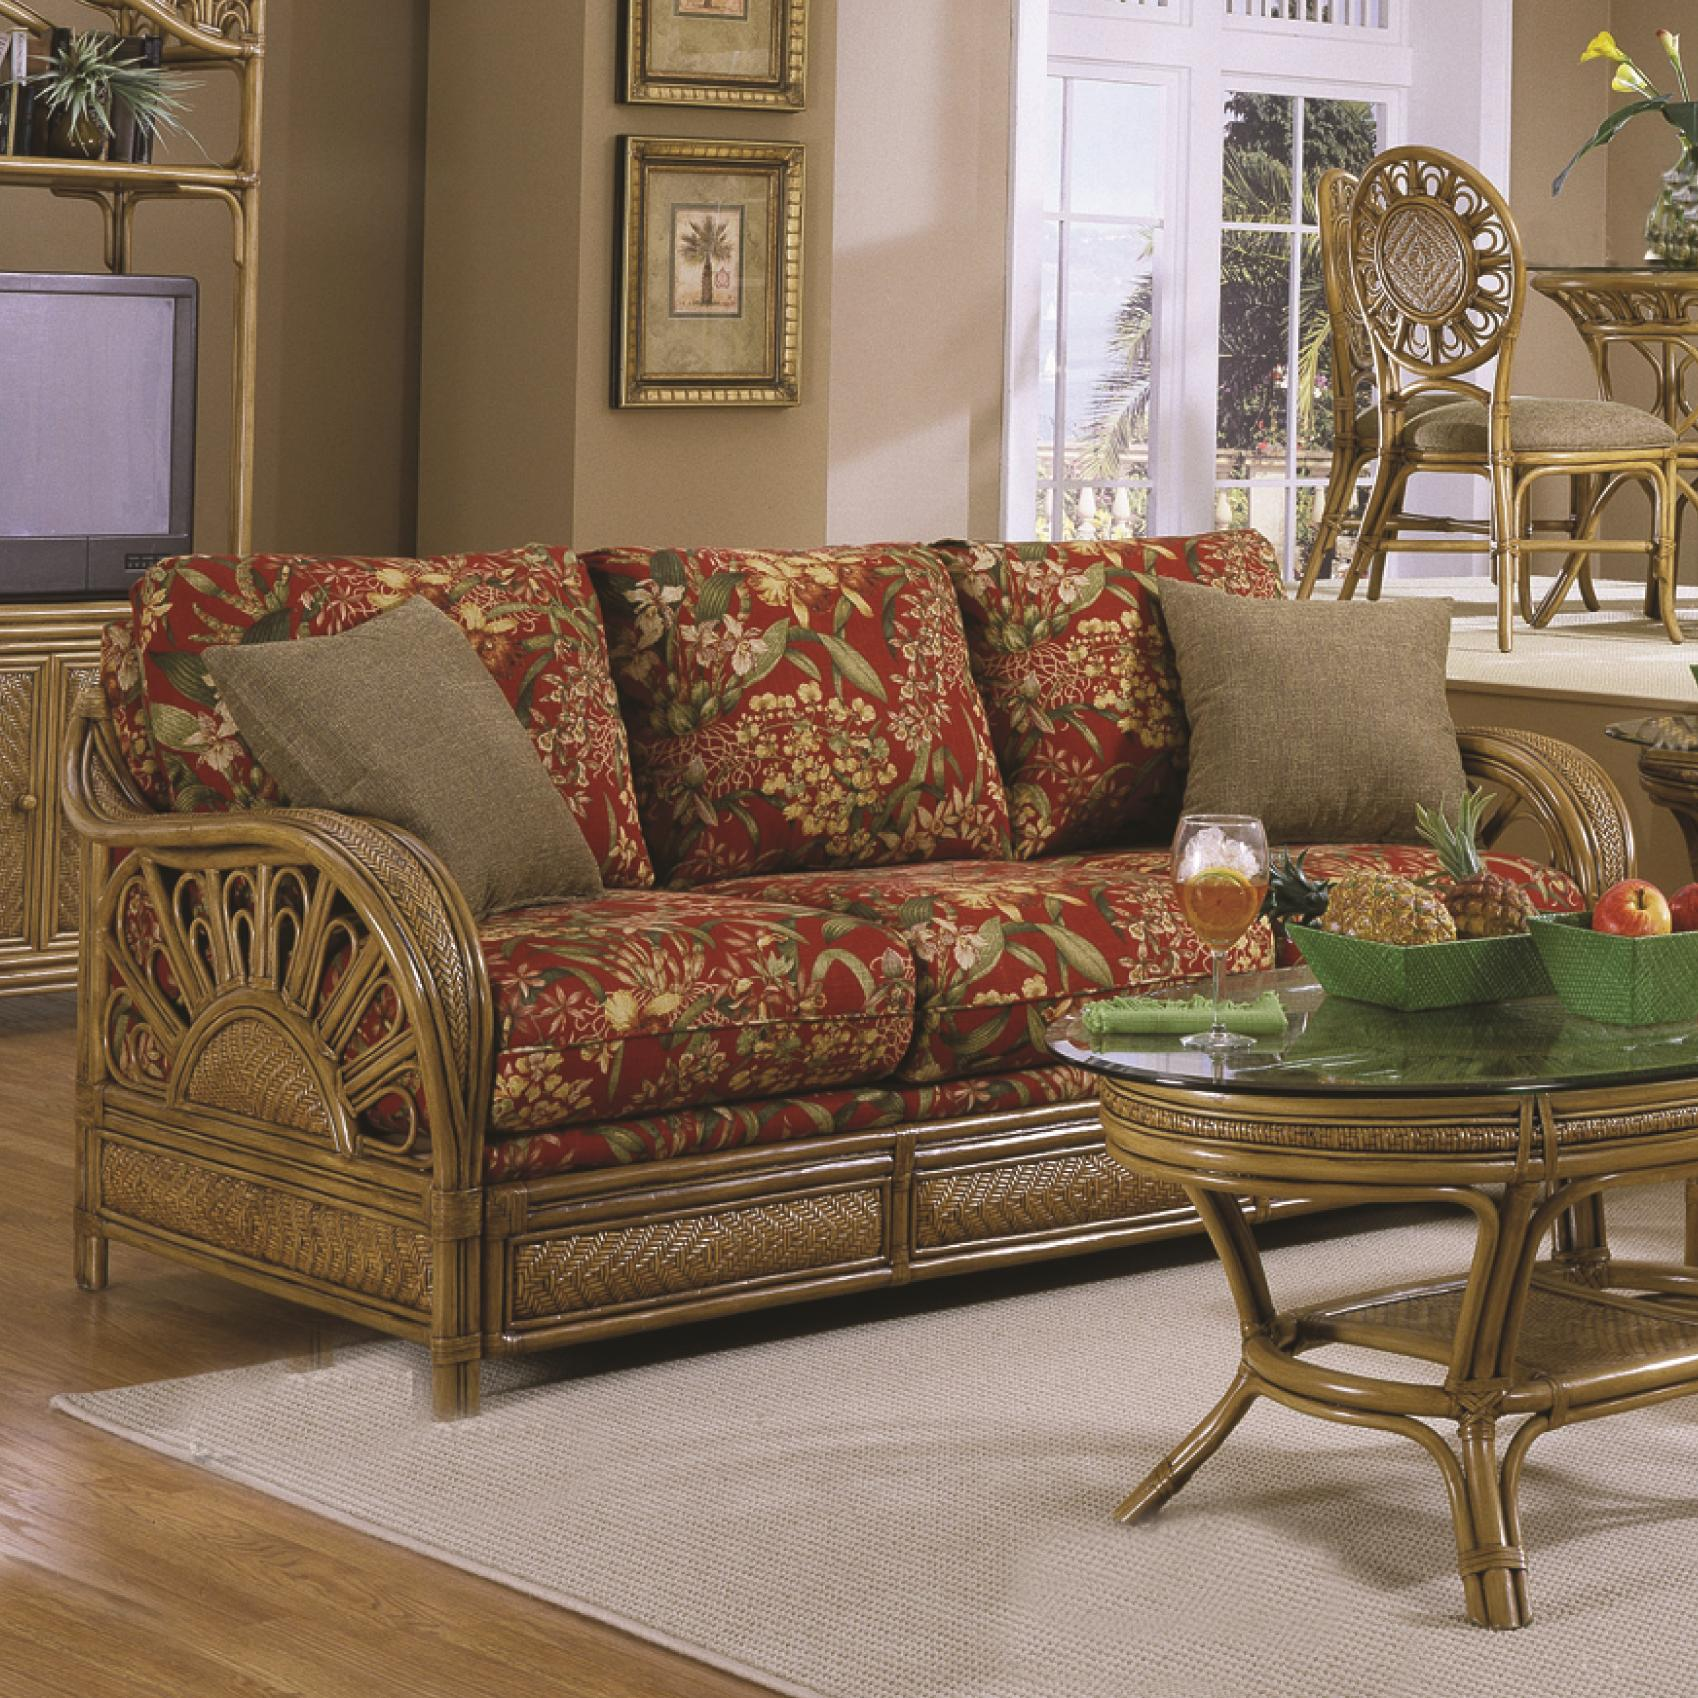 321 Collection Wicker Sofa by Capris Furniture at Esprit Decor Home Furnishings